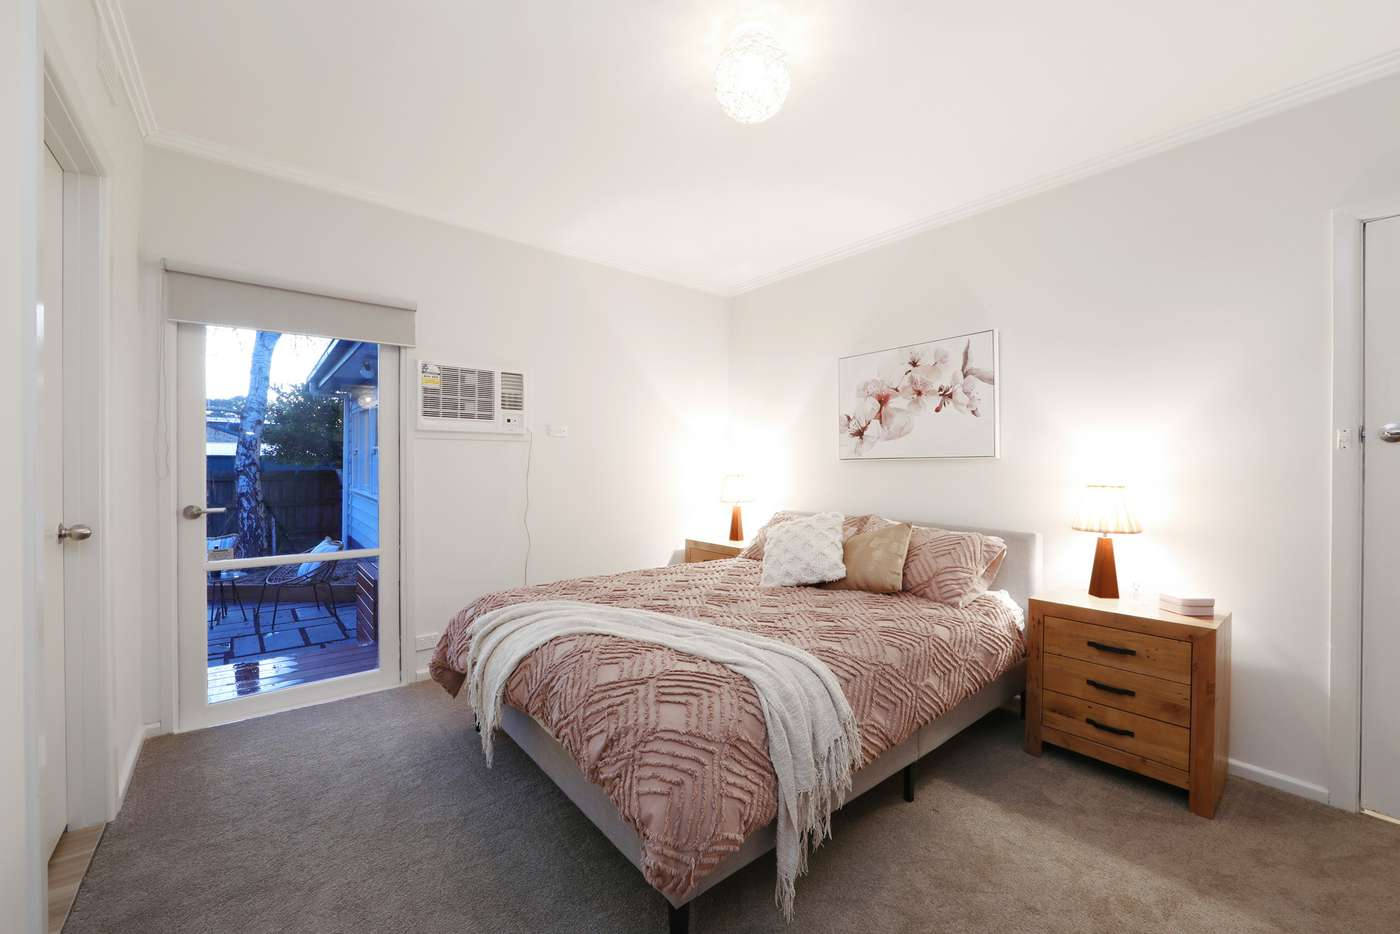 Fifth view of Homely house listing, 2 Acacia Road, Upper Ferntree Gully VIC 3156